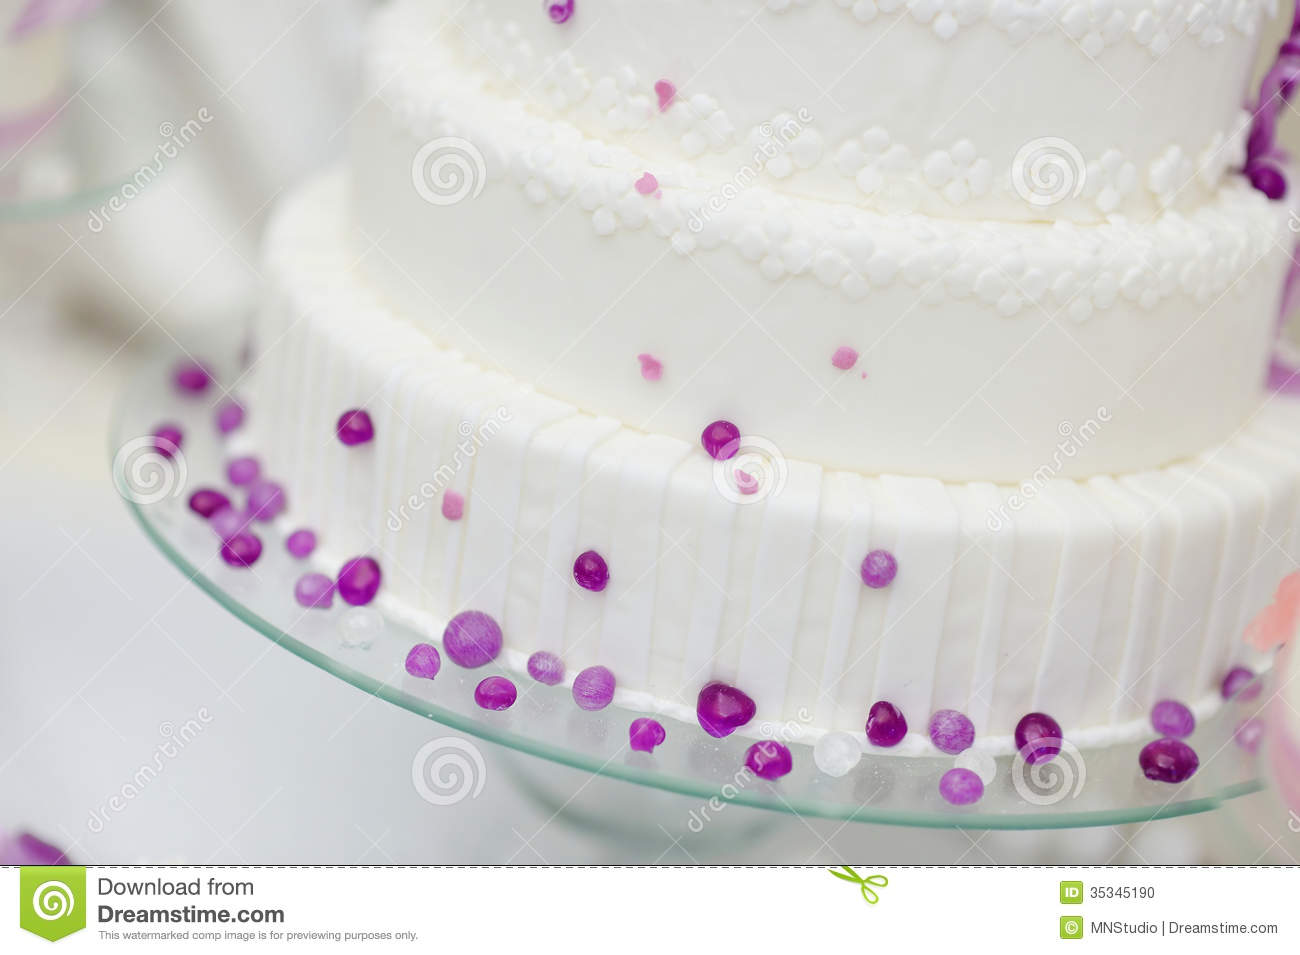 White Wedding Cake Decorated With Purple Bubbles Stock Photo - Image ...